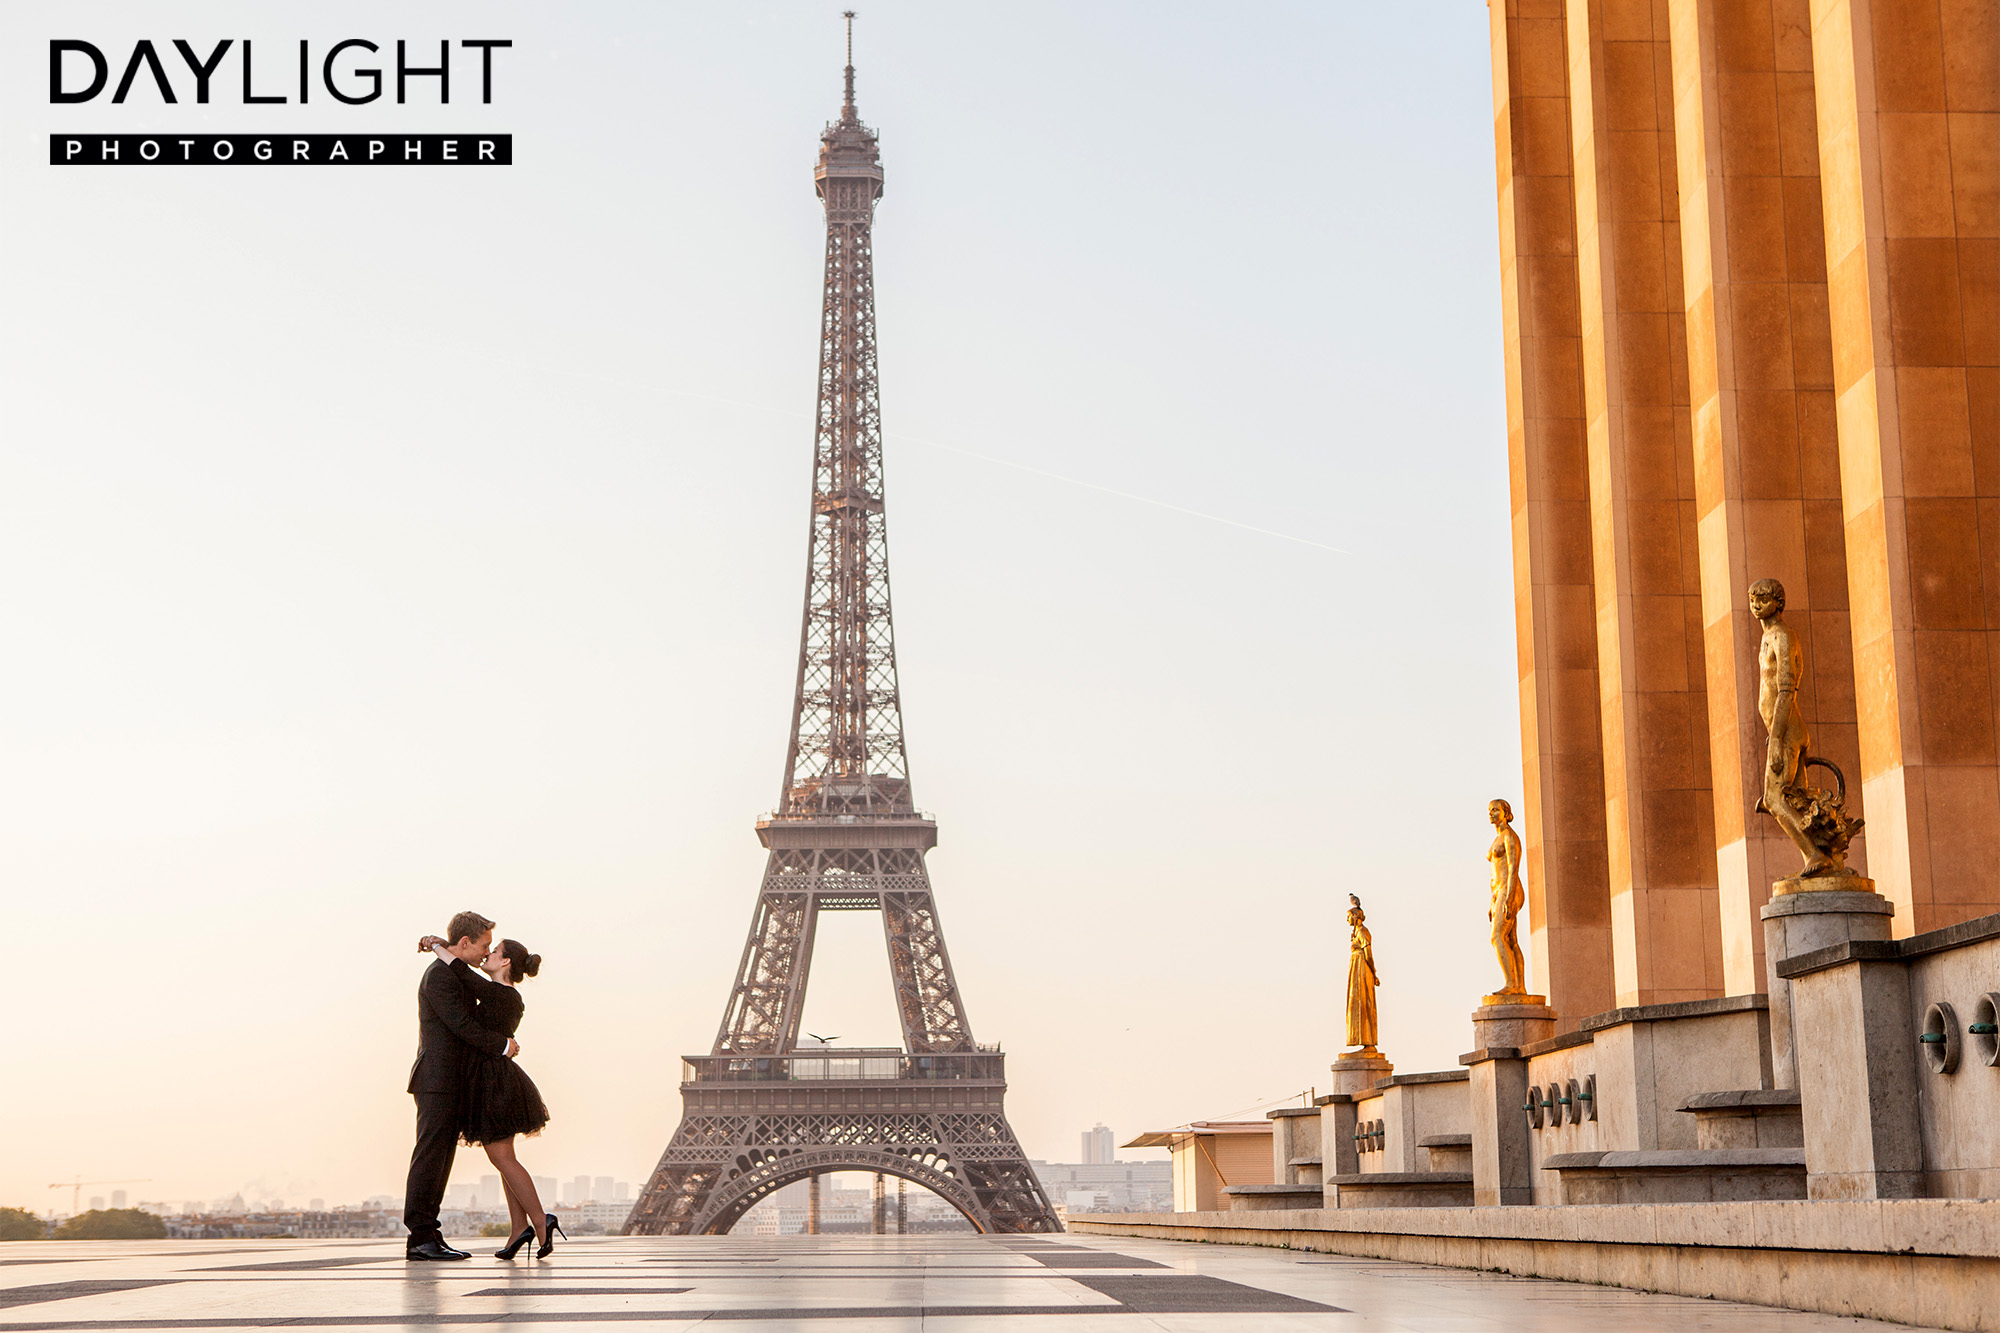 Book a professional photographer for a photoshoot in Paris